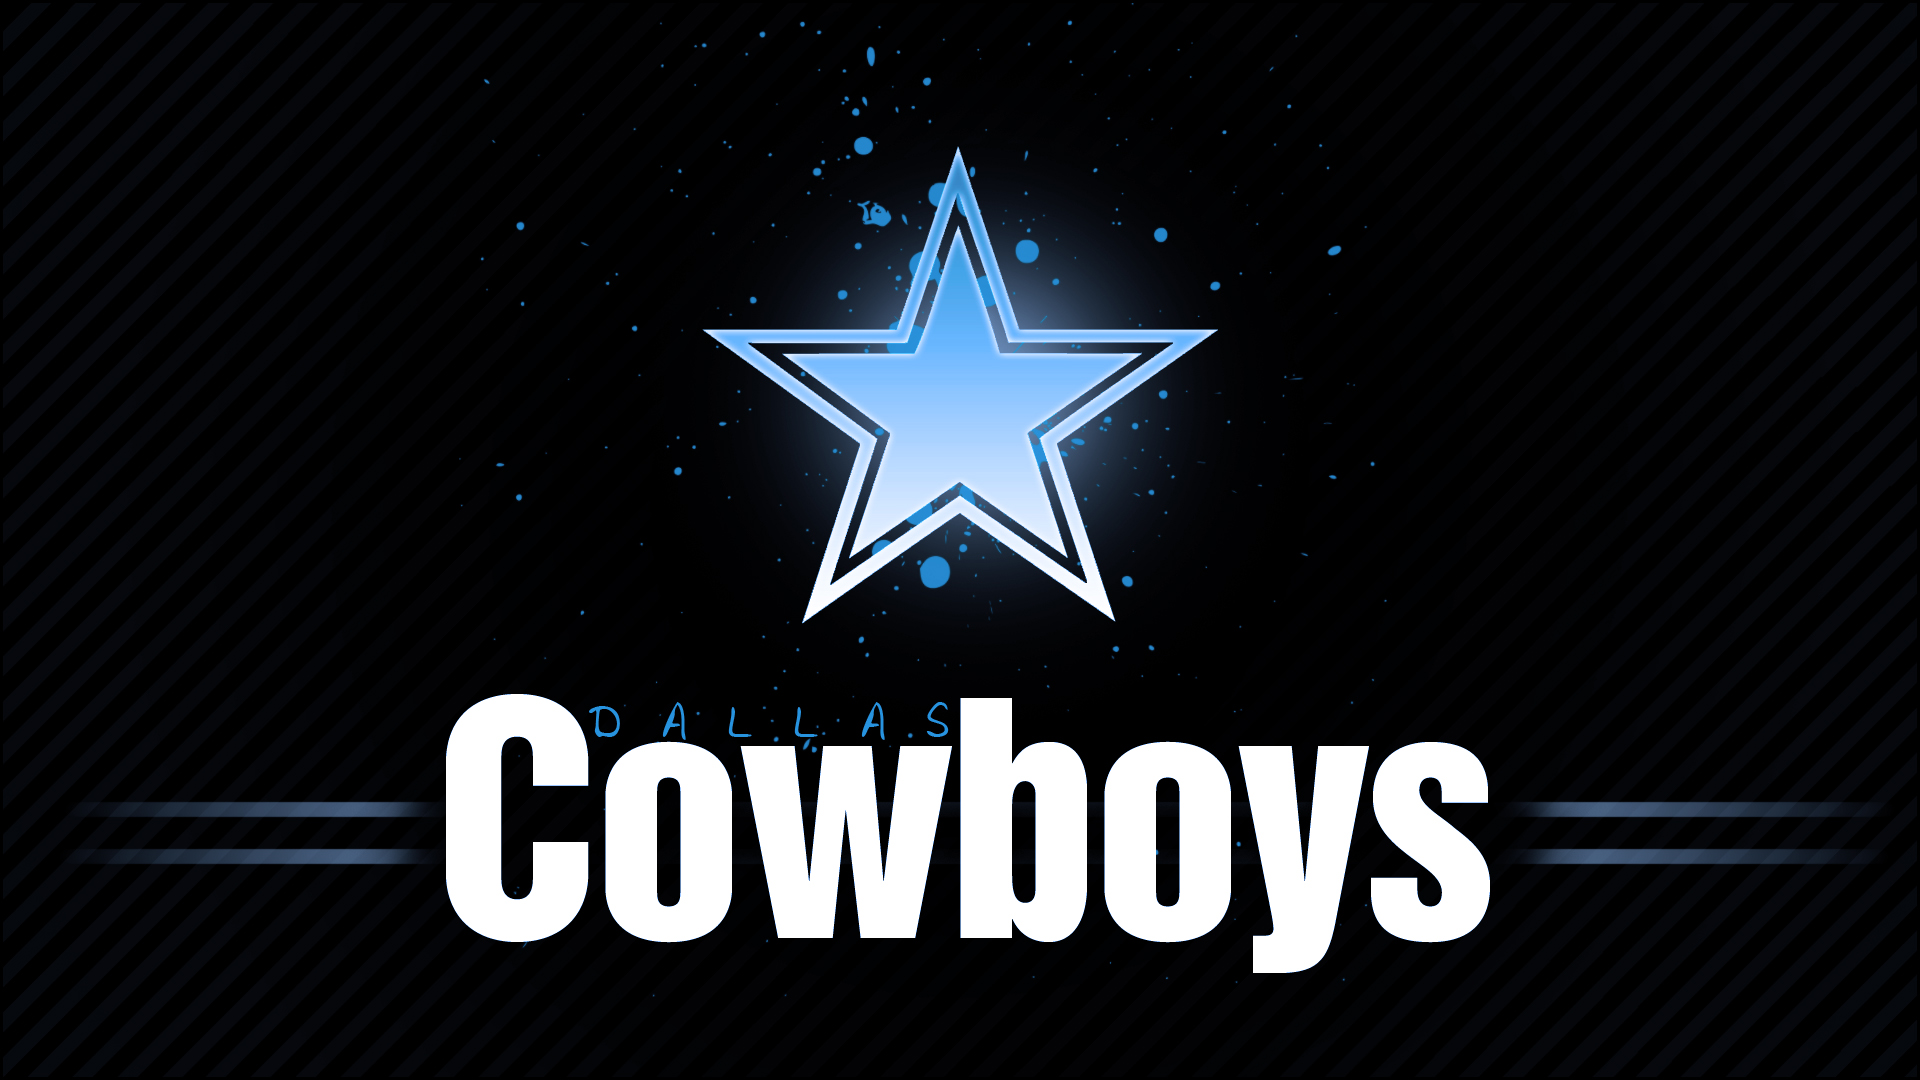 cowboys backgrounds